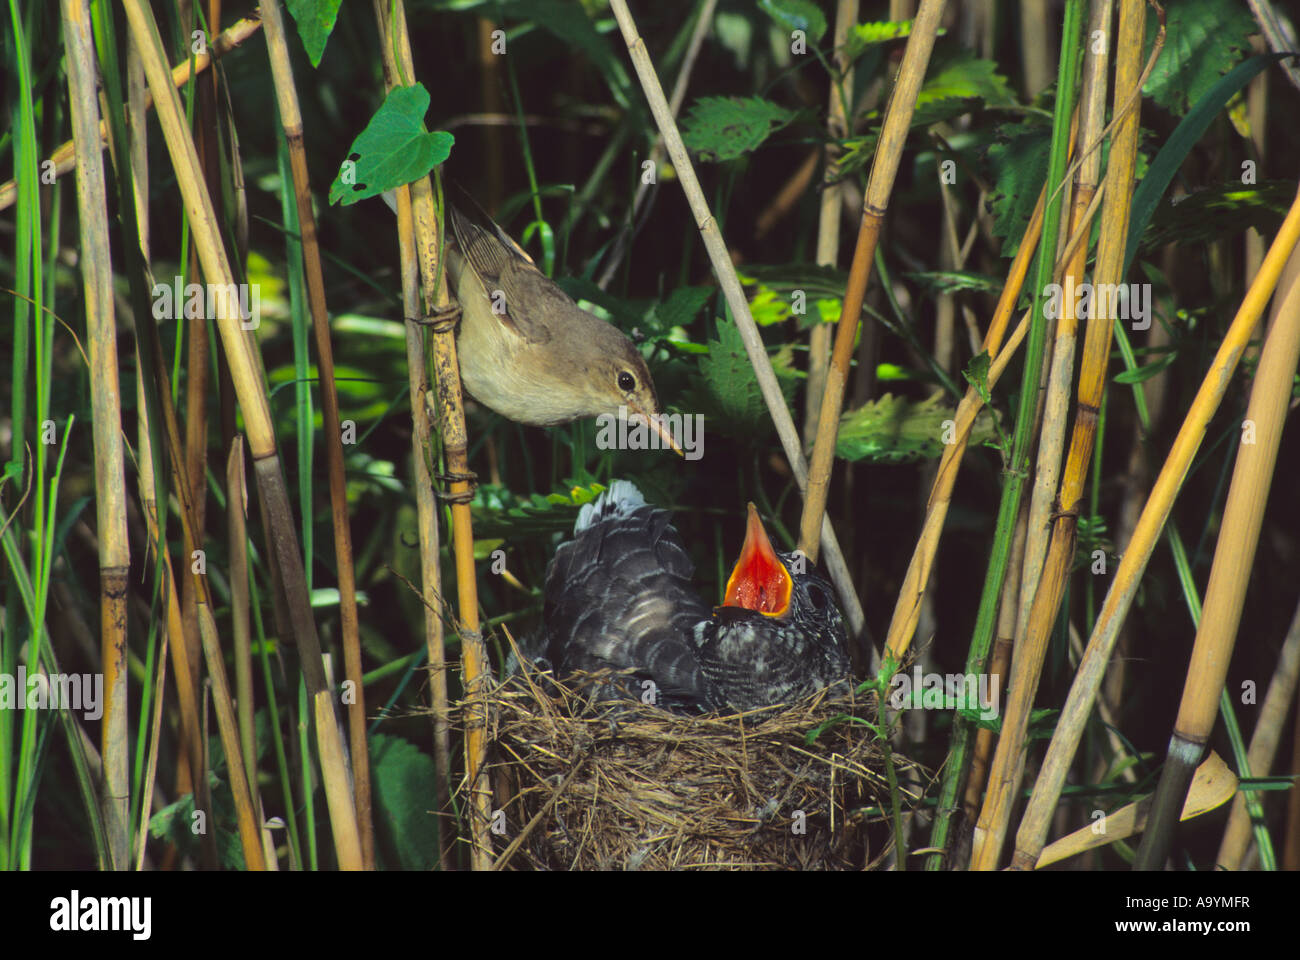 Common Cuckoo (Cuculus canorus) feeded by Eurasian Reed Warbler, Hortobagy-Lakes, Hungary Stock Photo